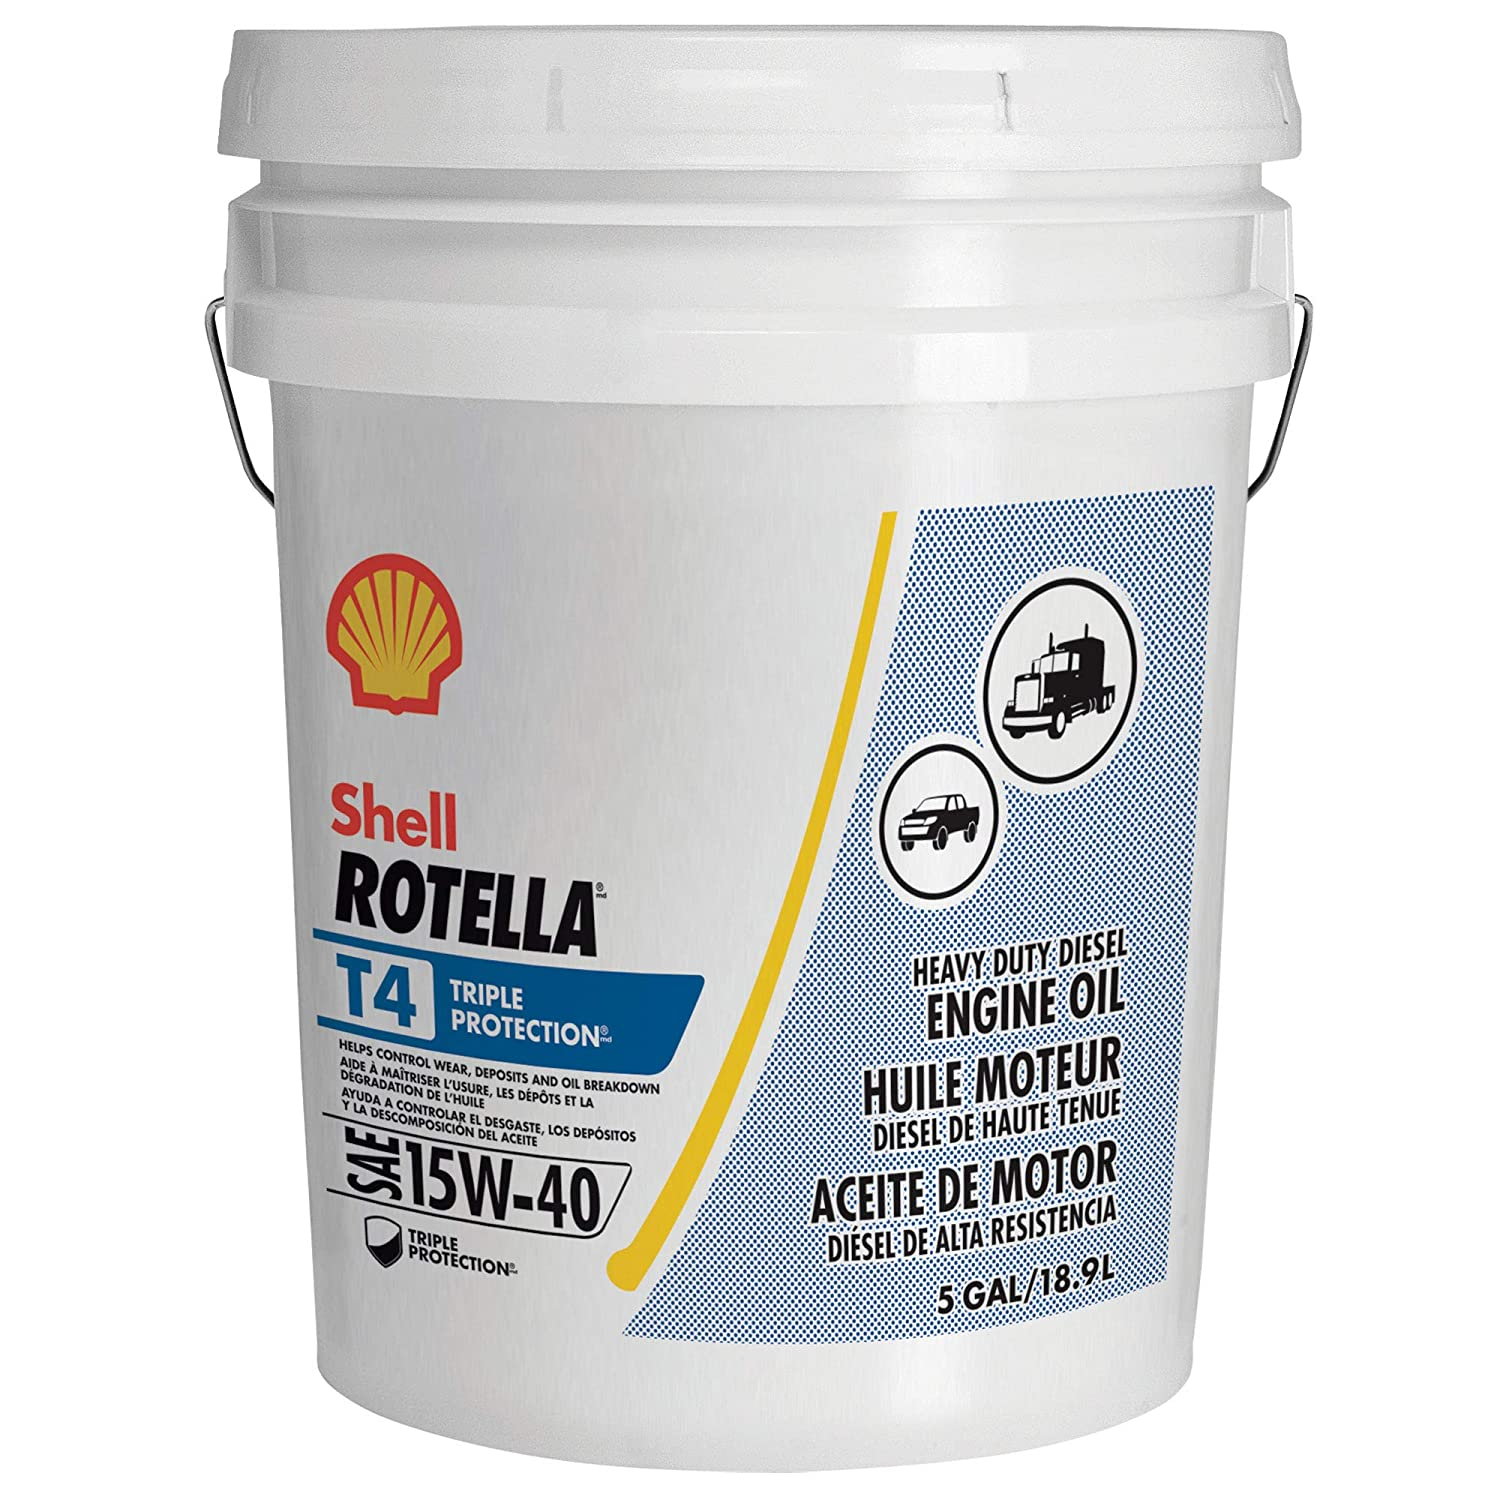 Shell Rotella T4 >> Shell Rotella T4 Triple Protection Conventional 15w 40 Diesel Engine Oil 5 Gallon Pail